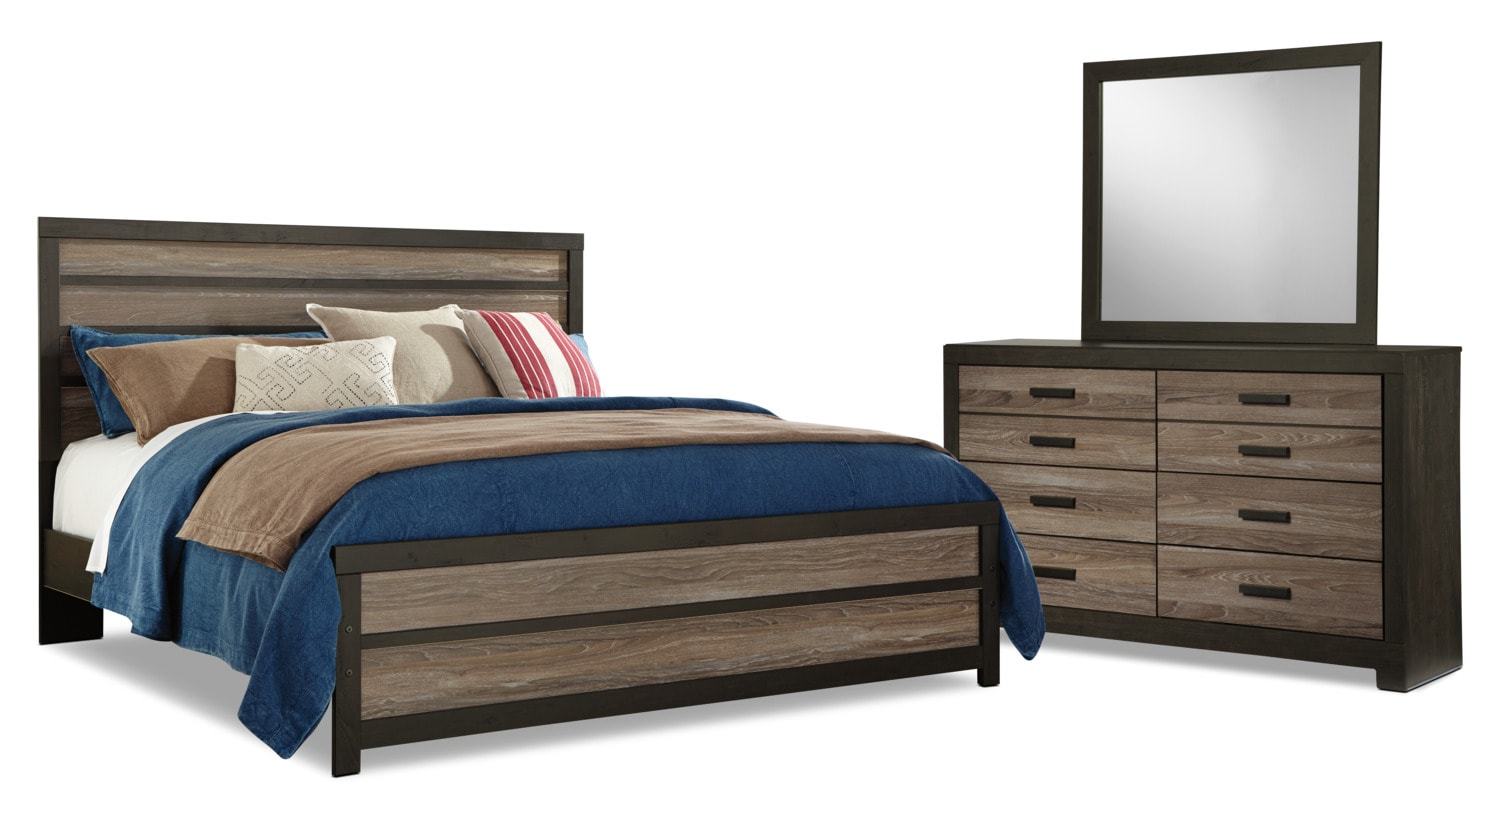 Bedroom Furniture - Harlinton 5-Piece King Bedroom Package